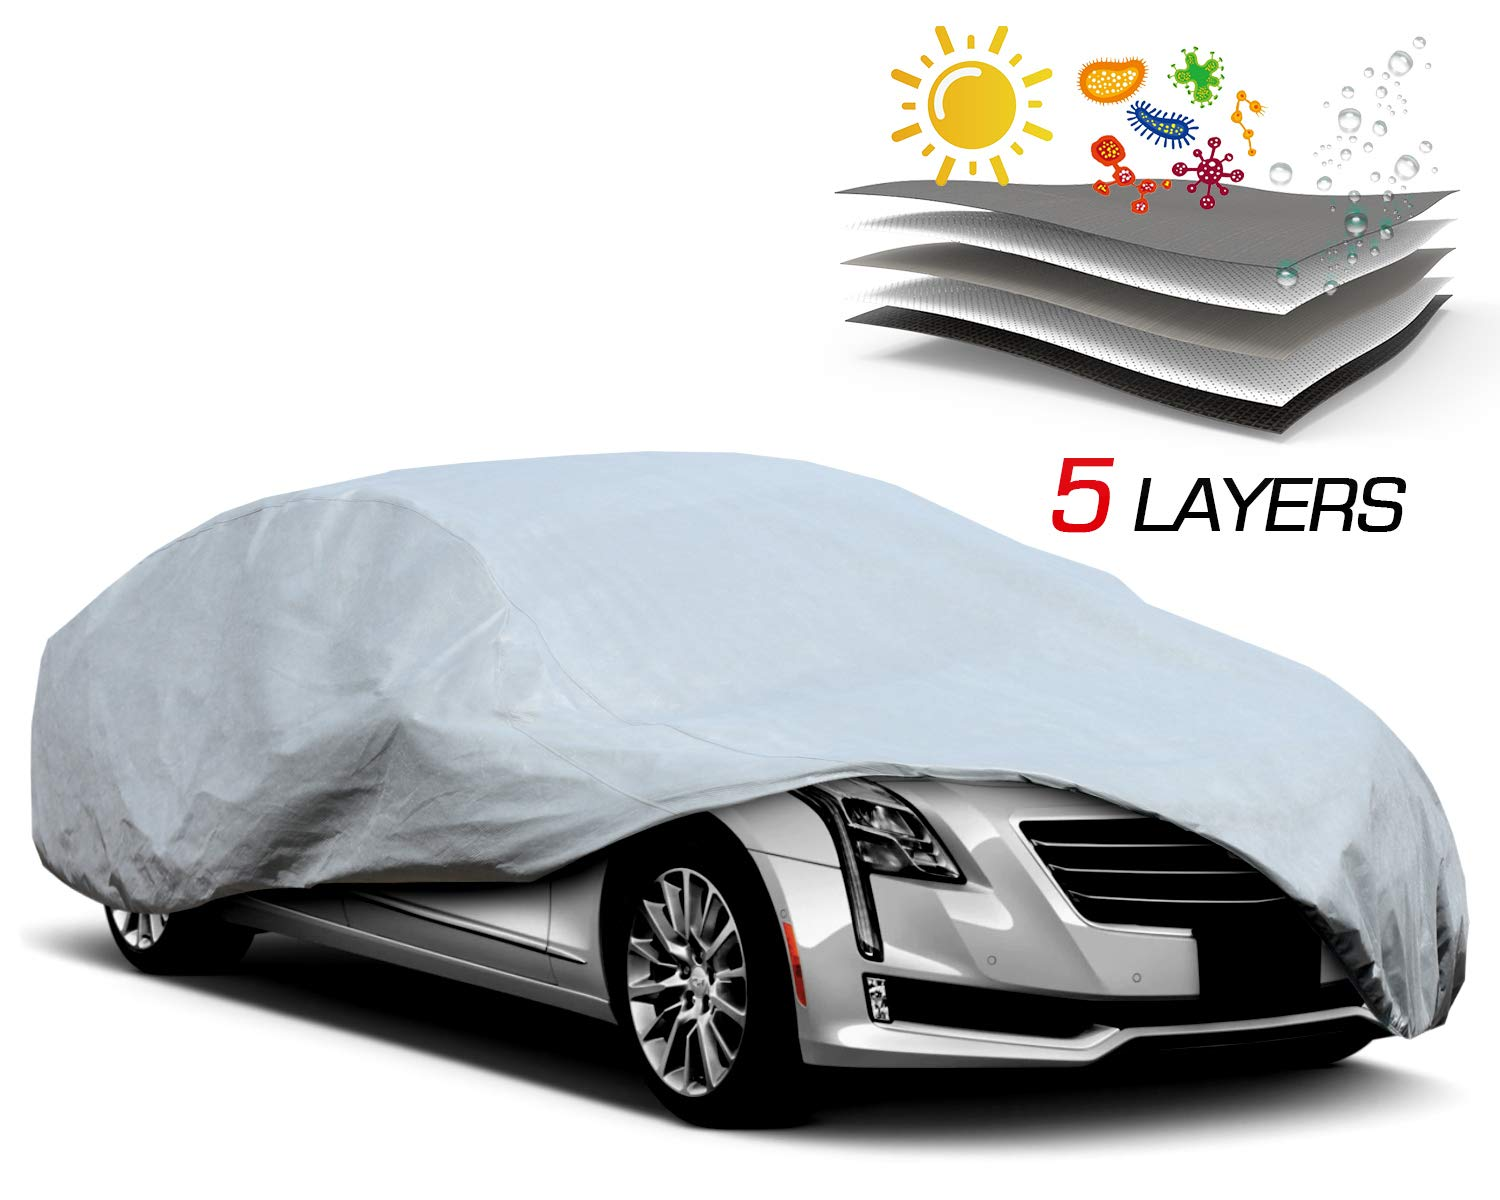 Leadpro Advanced Waterproof and Breathable Ultra Soft three-layer construction car cover size 185' suitable for Honda Civic, Toyota Corrola, Ford Fiesta